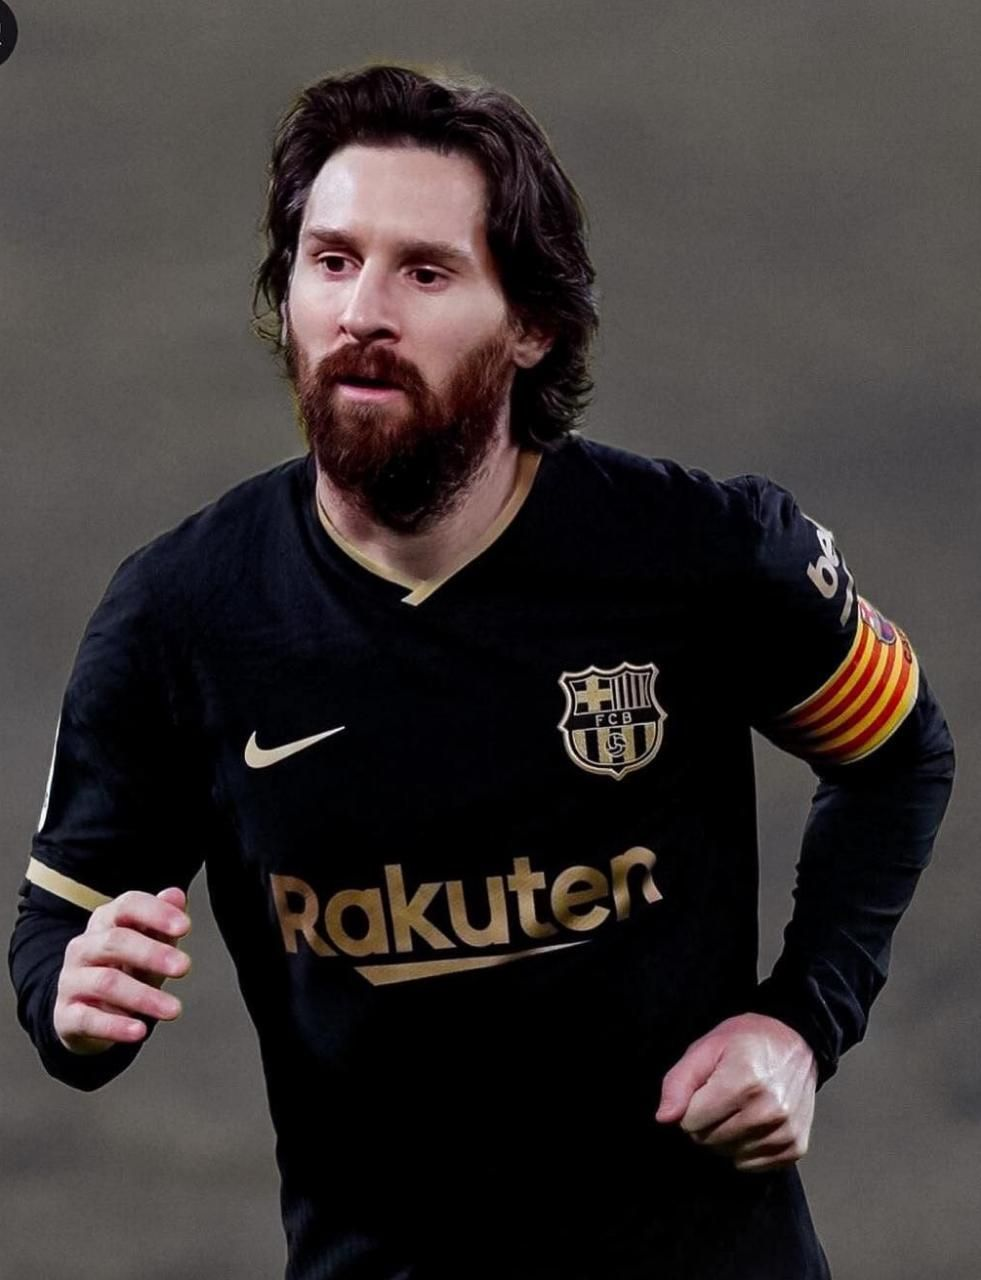 Pin By Gabriela B On Leo Messi In 2021 Leo Messi Lionel Messi Messi